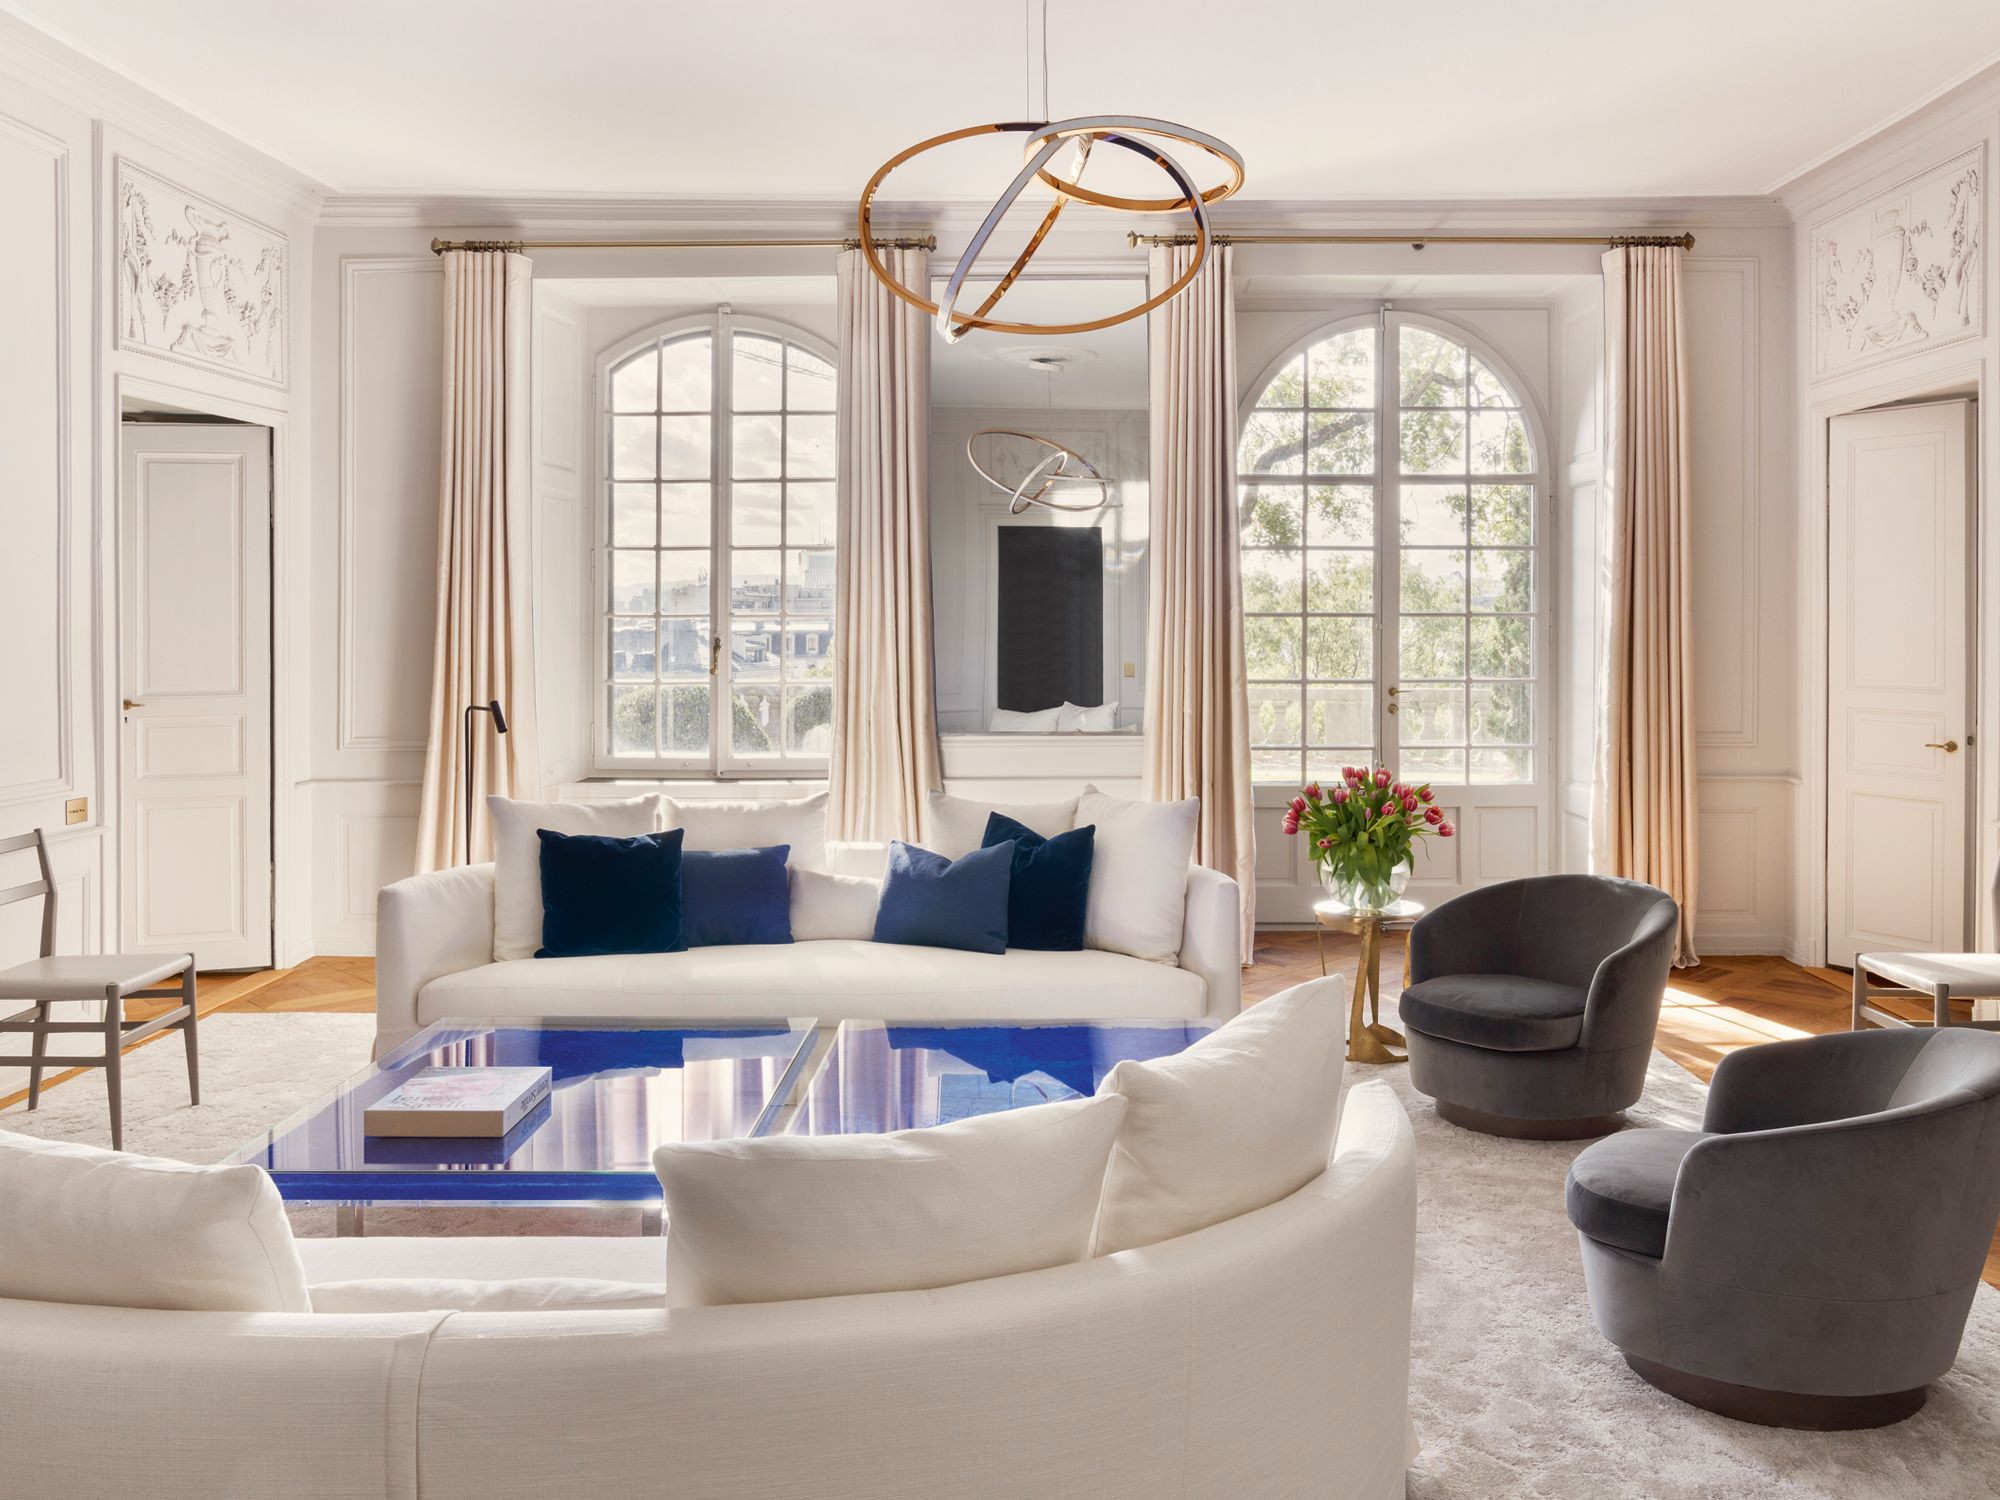 The living room is adorned with a pair of B&B Italia Maxalto Crono sofas, Cassina 646 Leggera chairs by Gio Ponti, Minotti Jacques armchairs, Vincenzo de Cotiis DC1511 side table and the Sum of One and Two hanging lamp by Niamh Barry